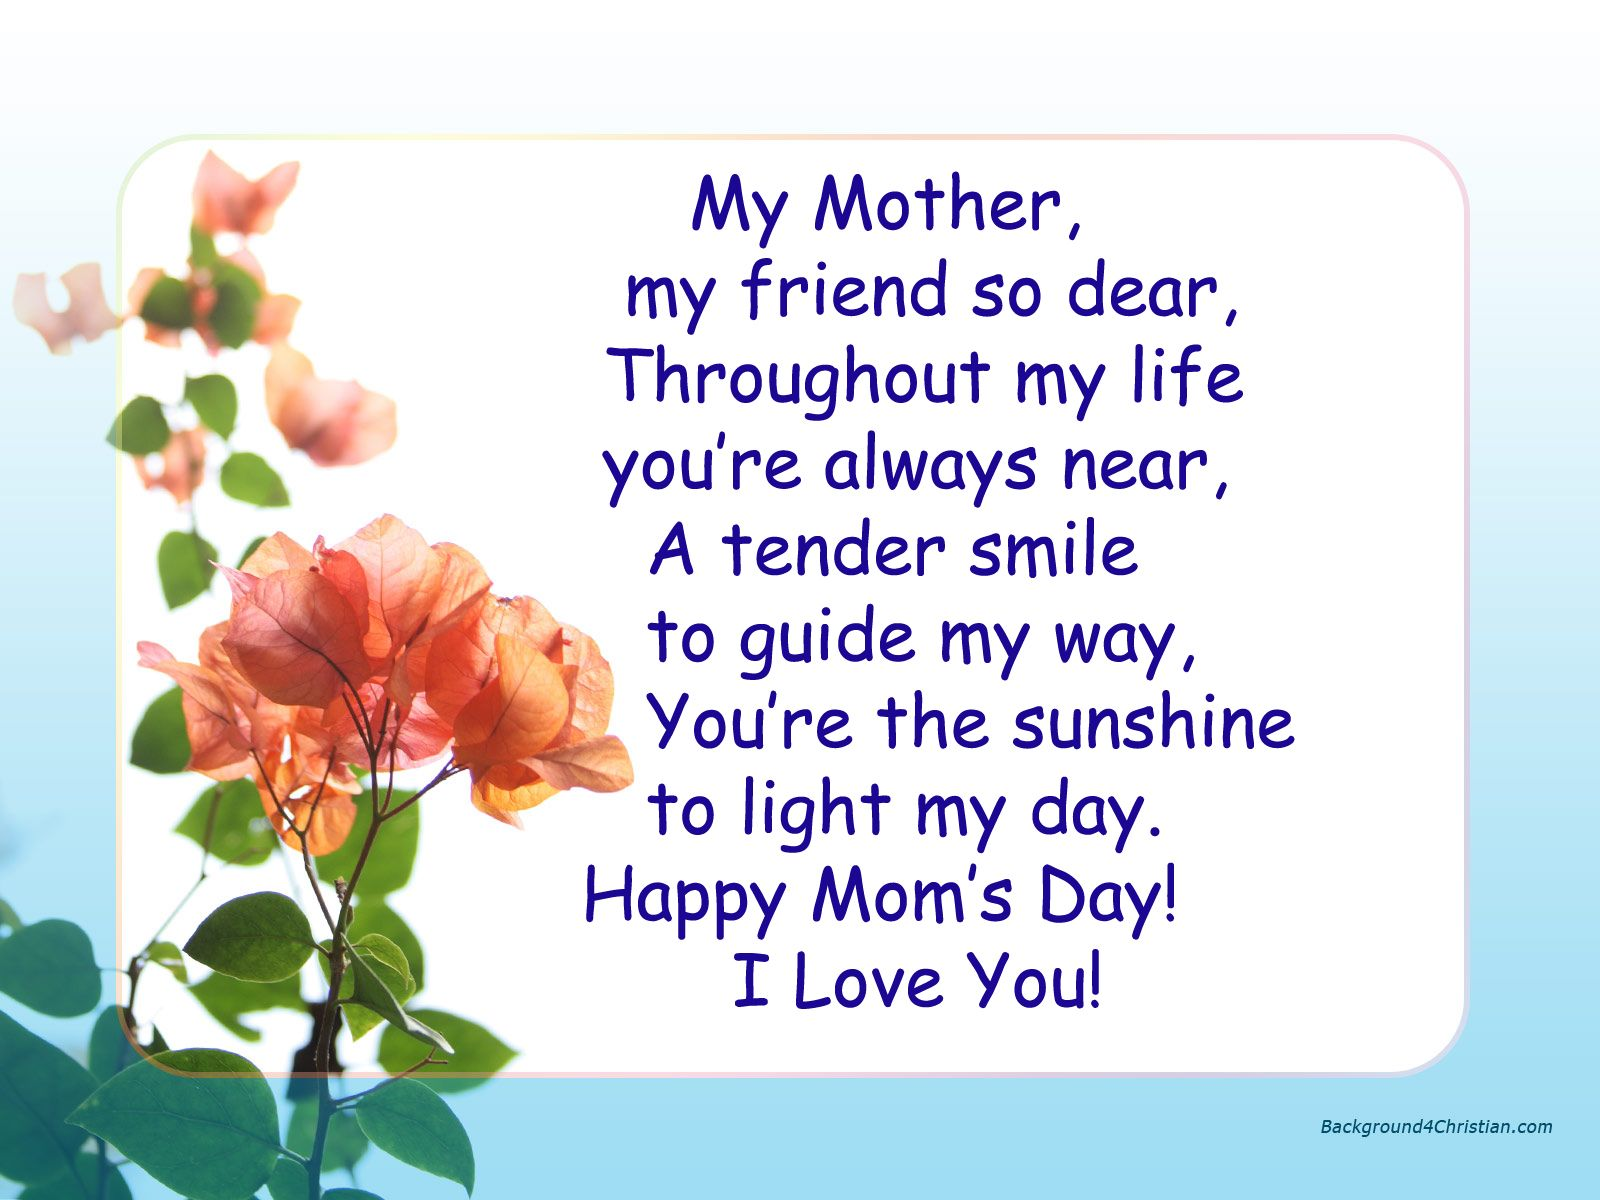 Free mothers day greetingsquotes poems happy mothers poem and day free image mother quotes free mothers day greetingsquotes poems answer blog thecheapjerseys Choice Image